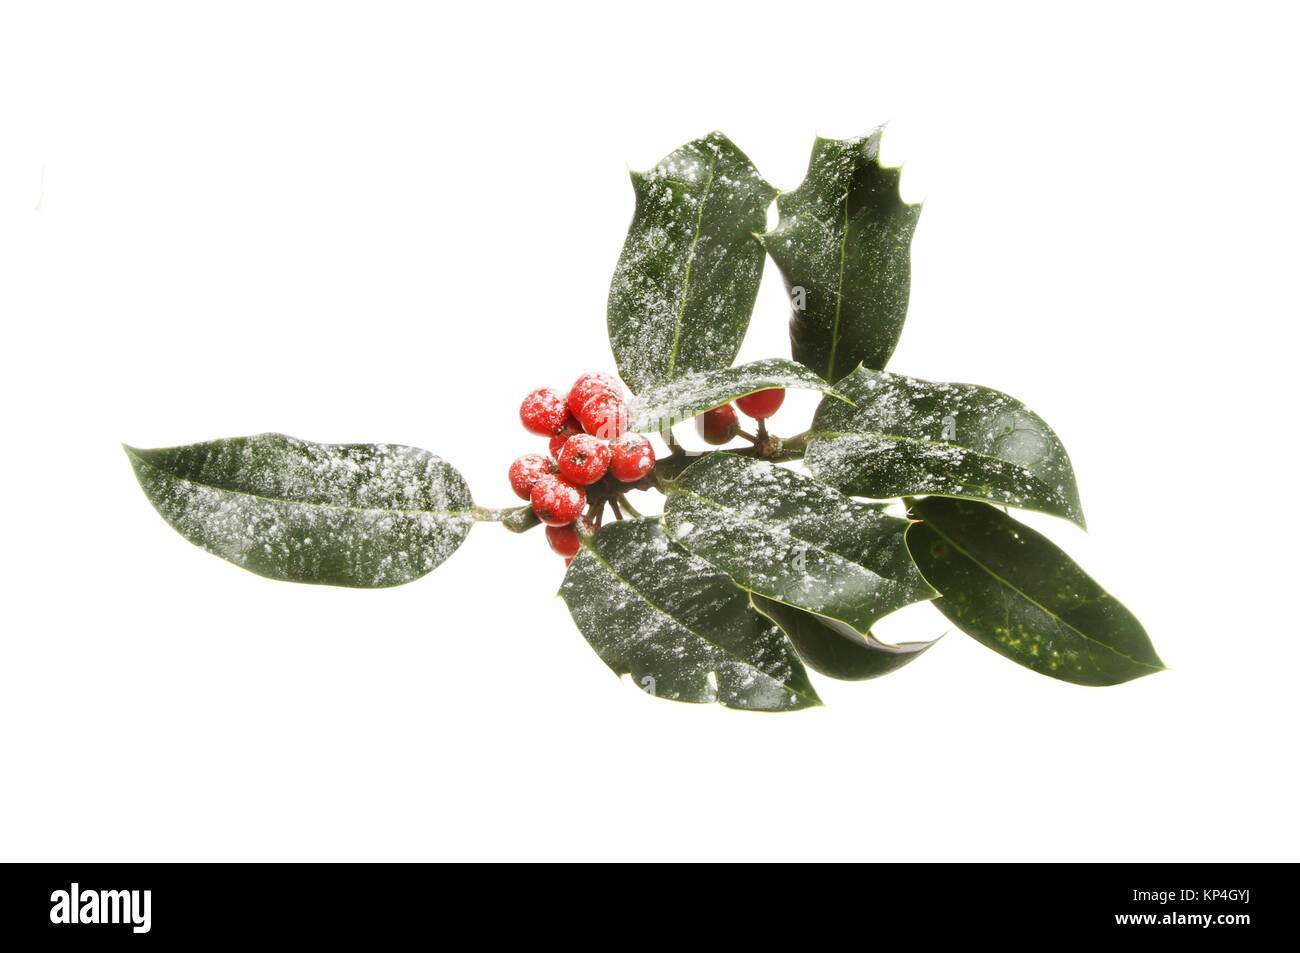 Snow dusted holly leaves and berries isolated against white - Stock Image